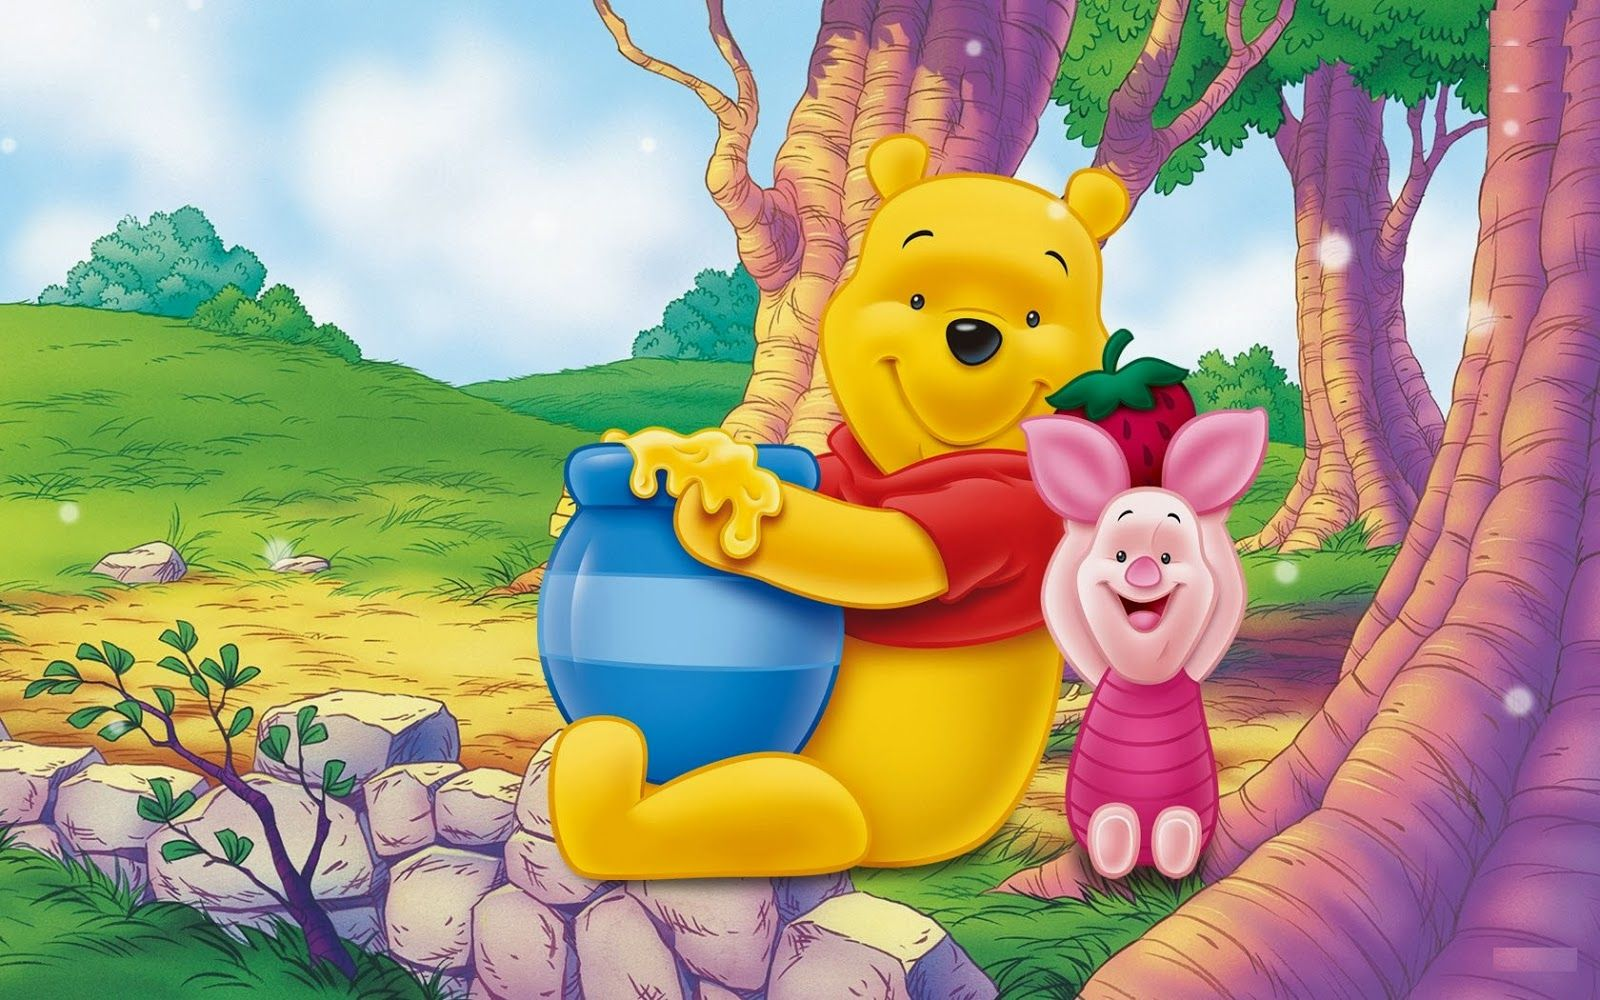 Hd Images Winnie Pooh Collection 1024768 Imagenes De Winnie Pooh